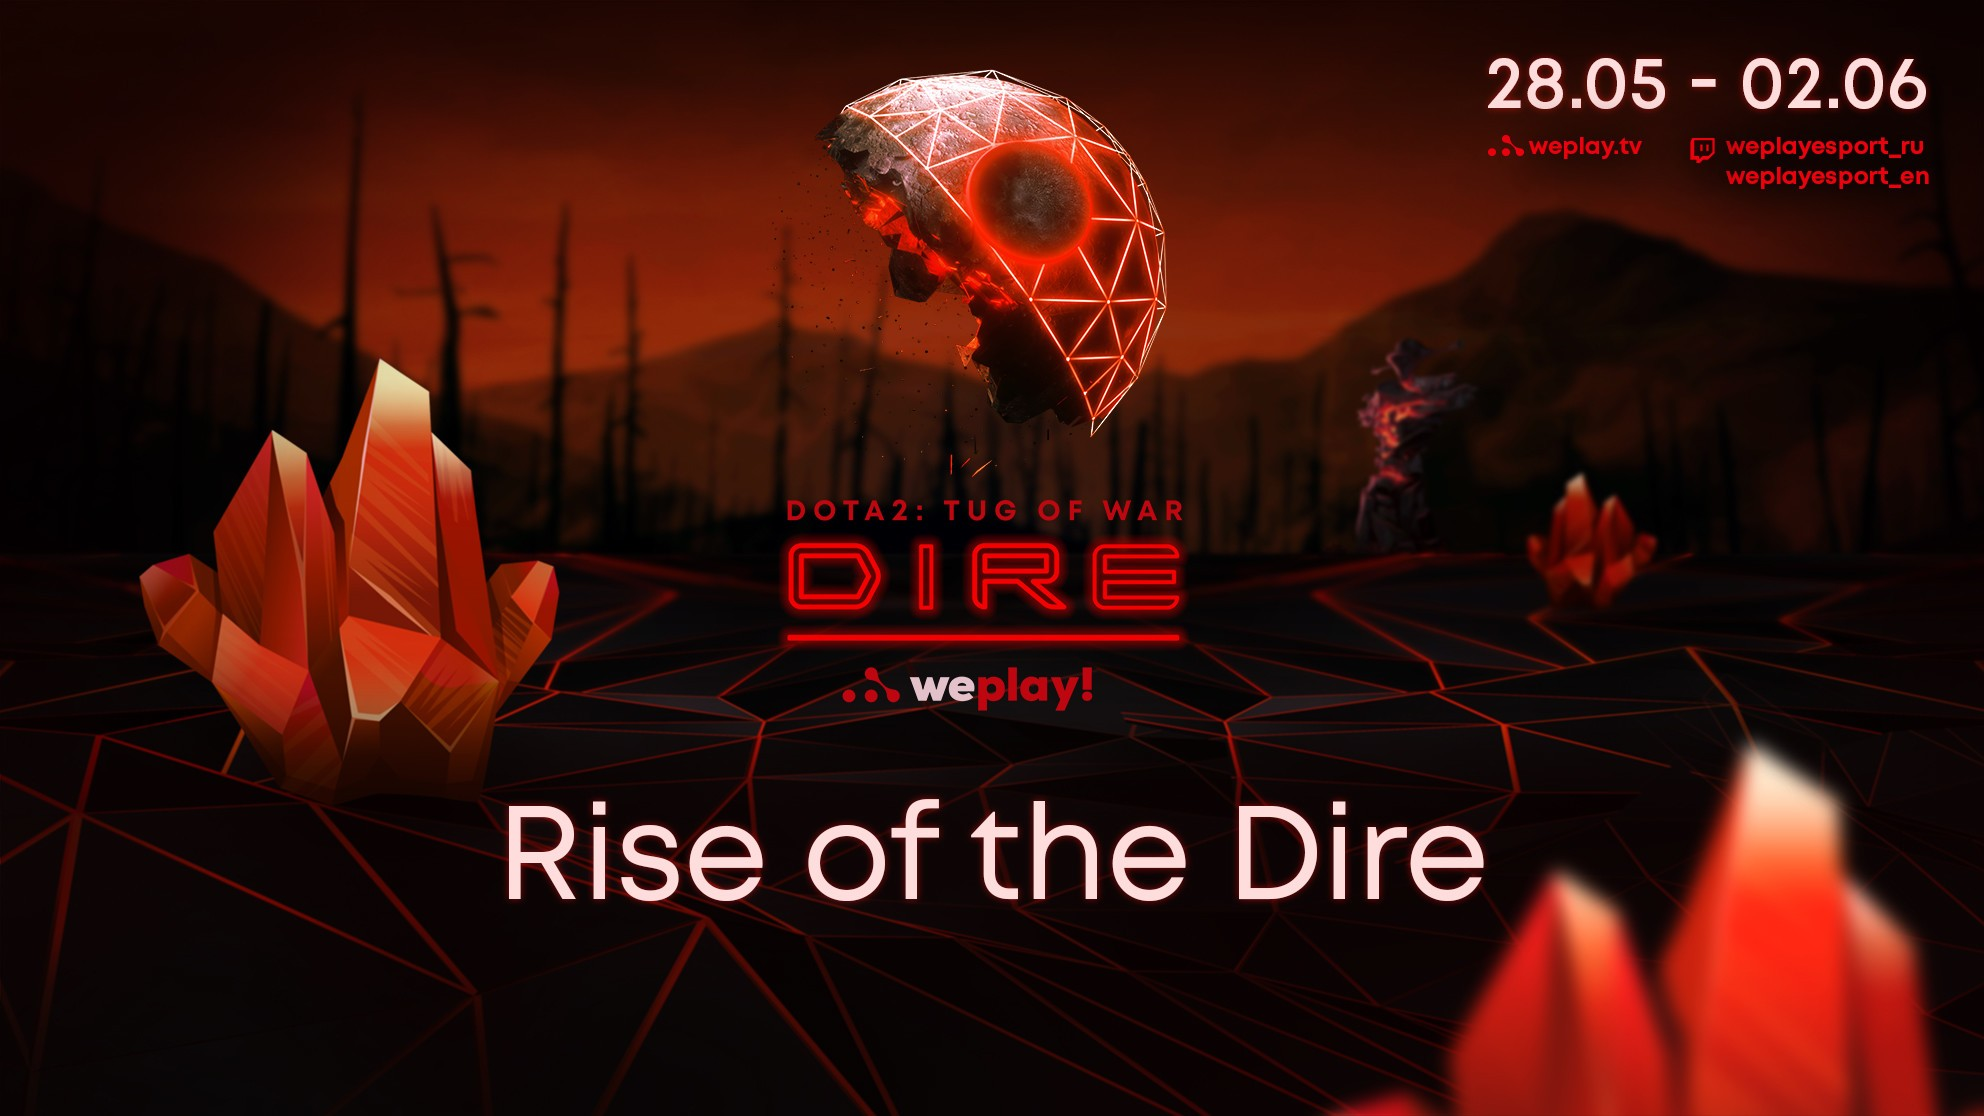 WePlay! Tug of War: Dire announcement